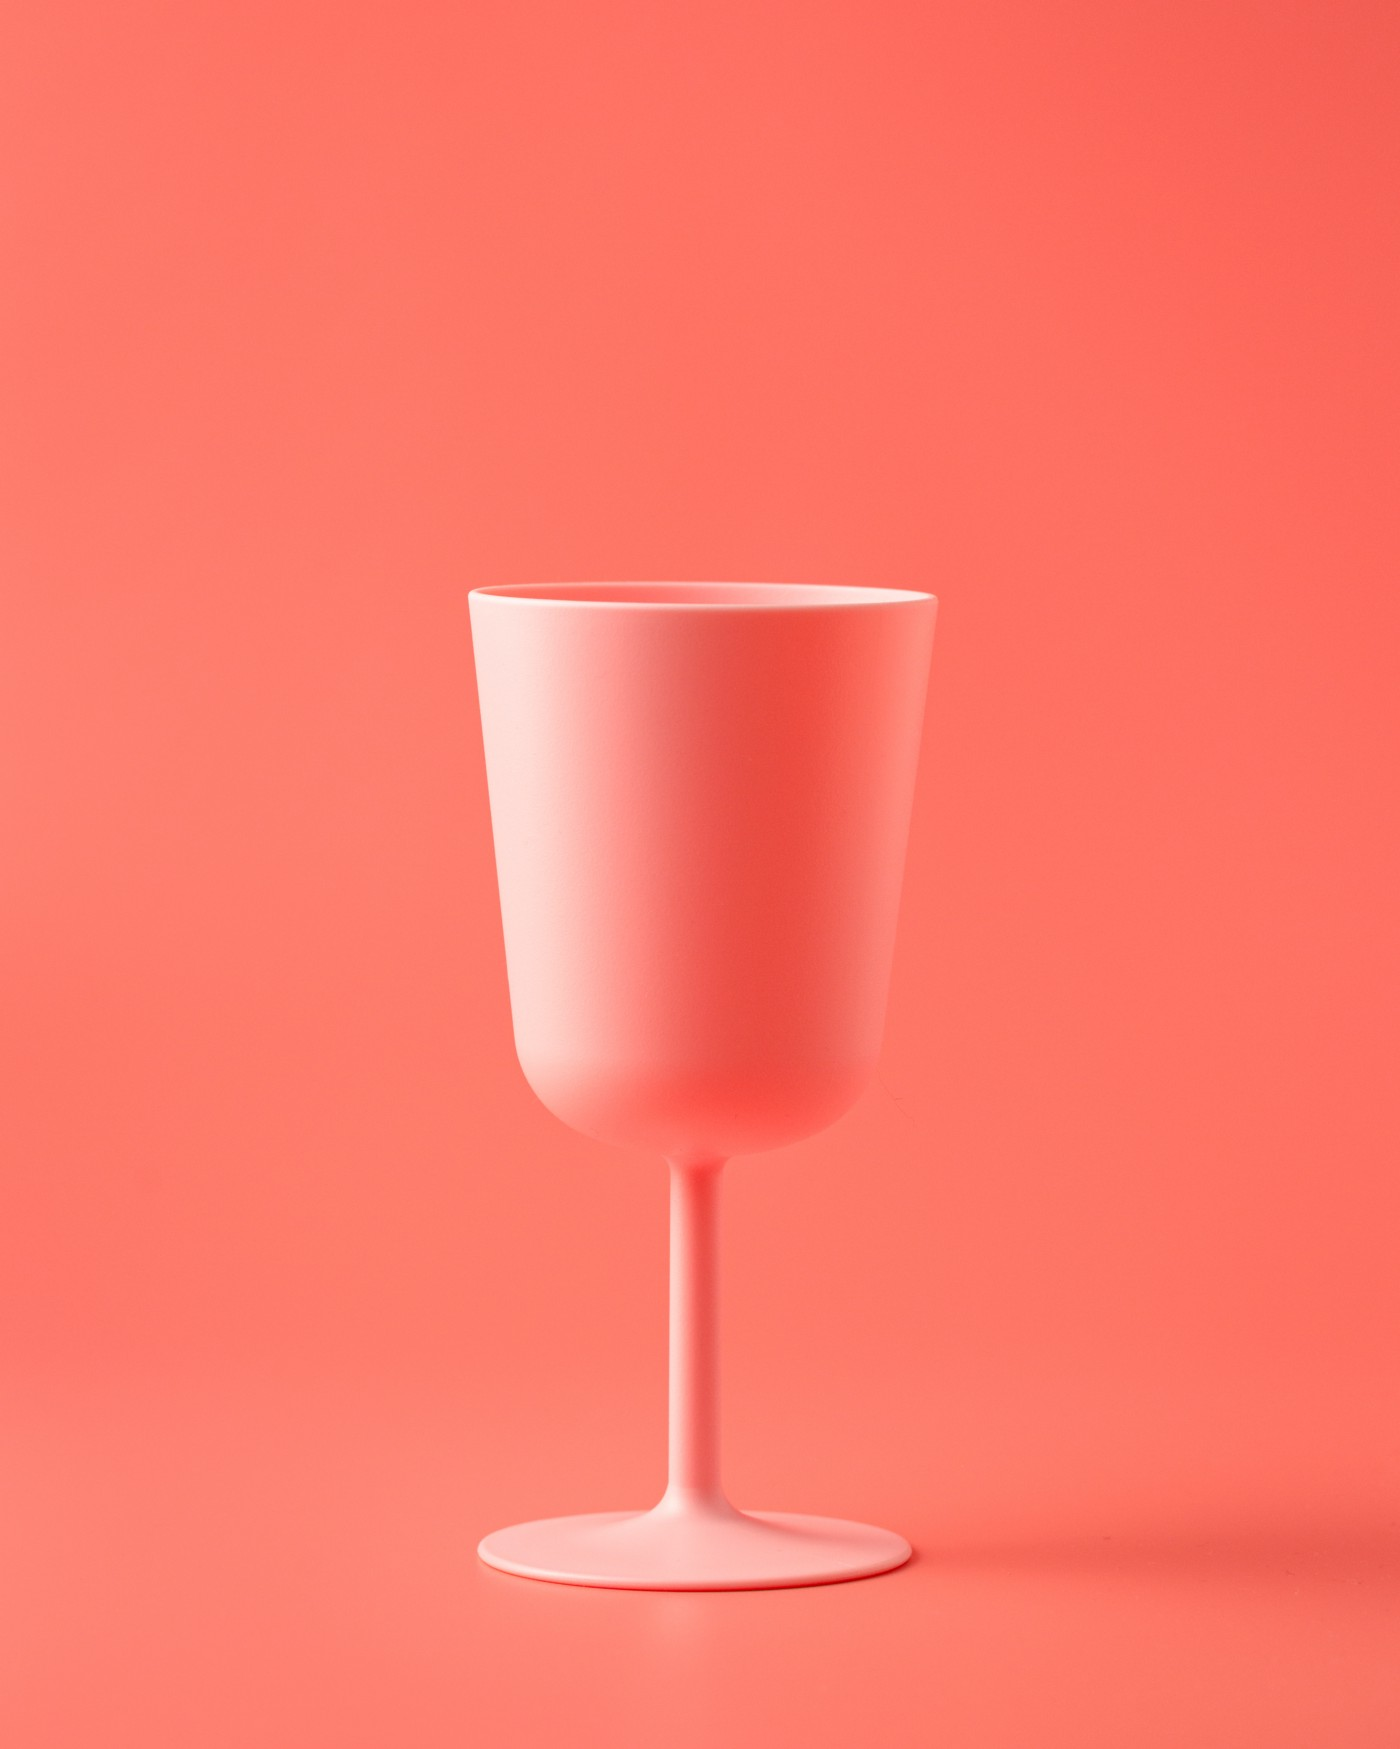 A rendering of a coral cup of wine on a coral background.